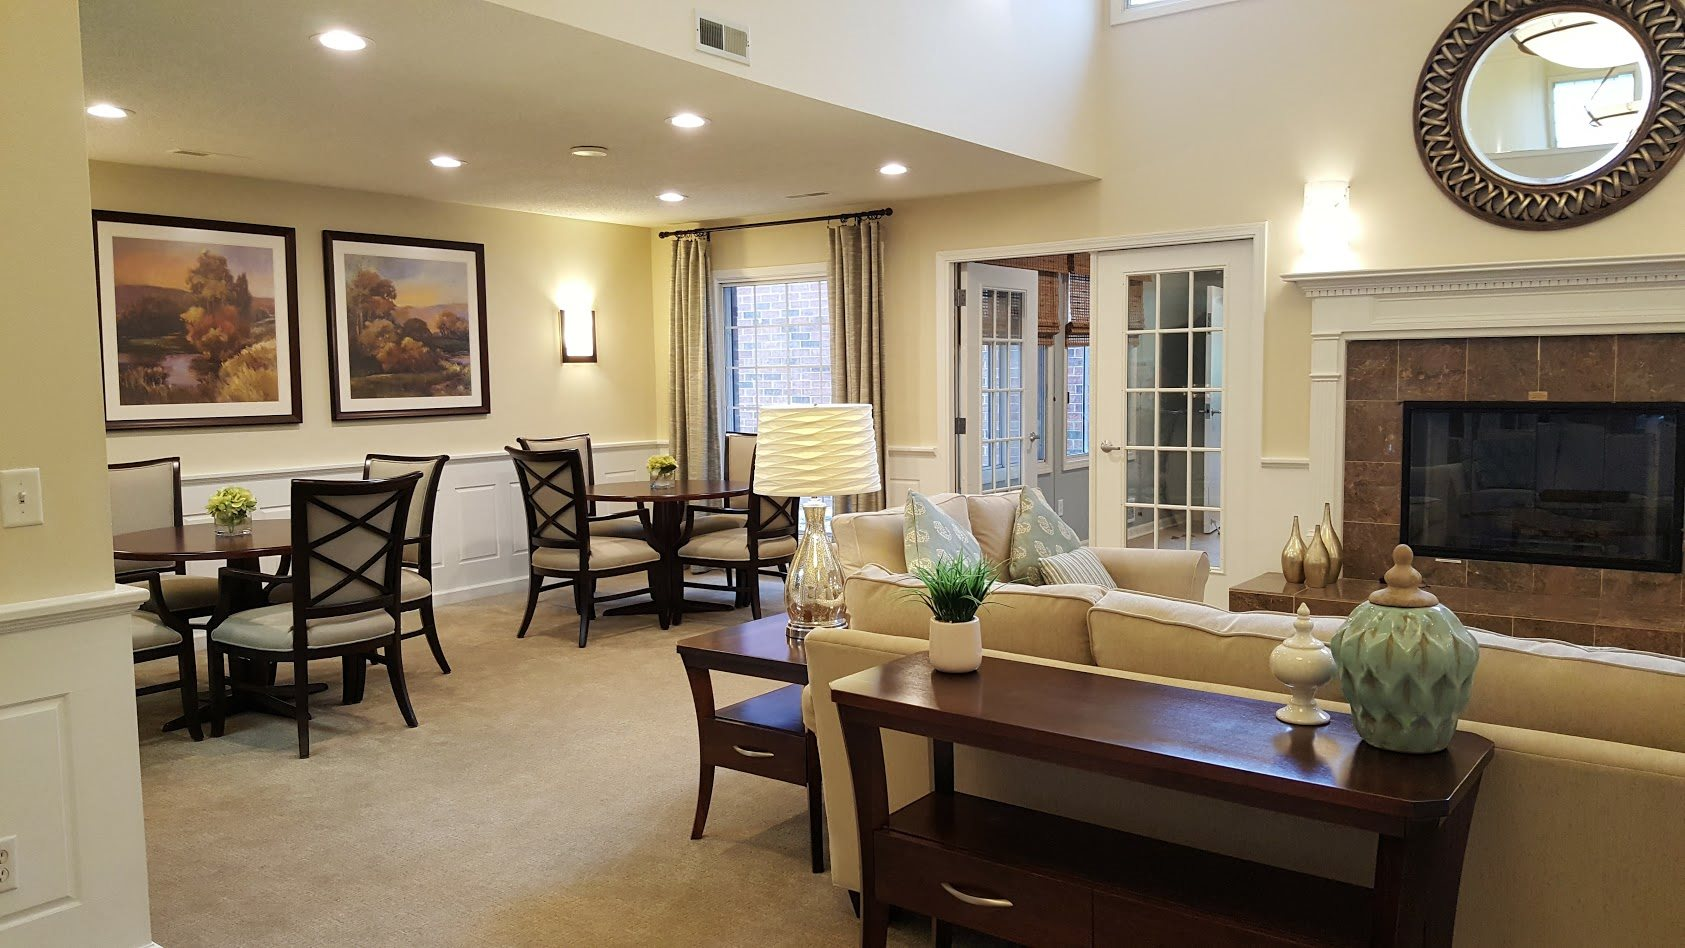 Living Room With Lush carpeting at Brookfield Highlands Apartments 55+, Waukesha, WI, 53186